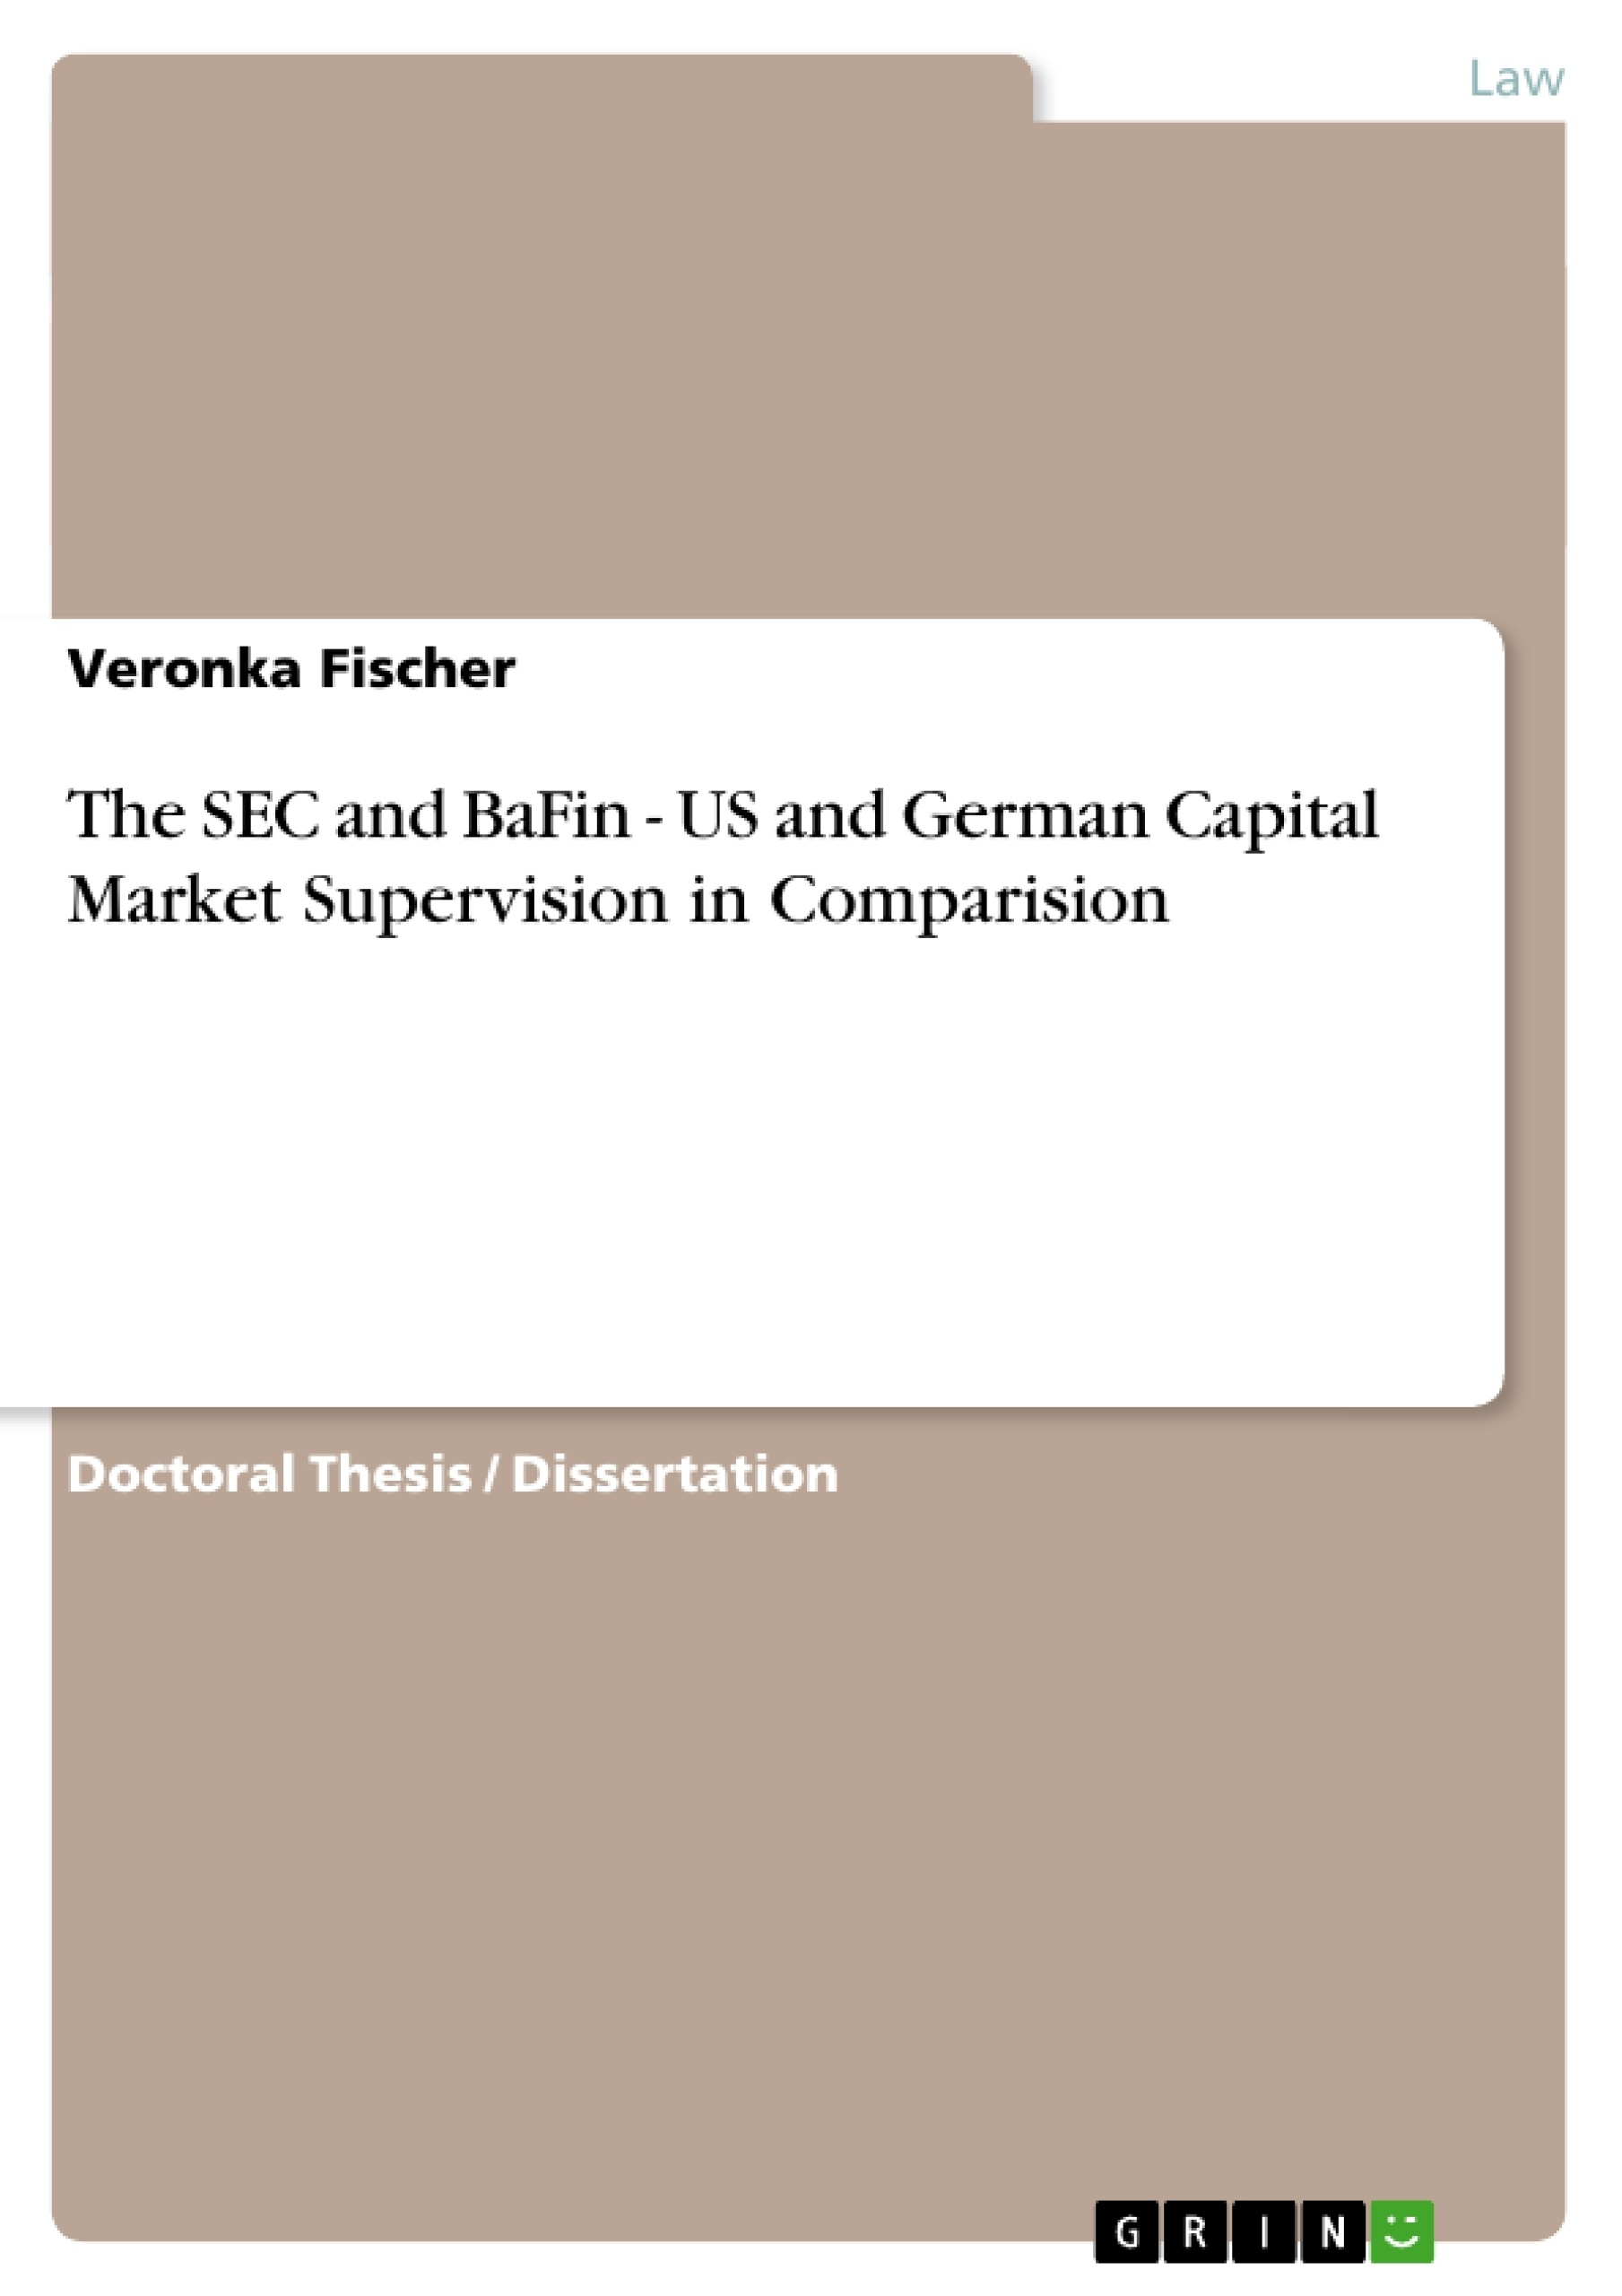 The SEC and BaFin - US and German Capital Market Supervision in ...